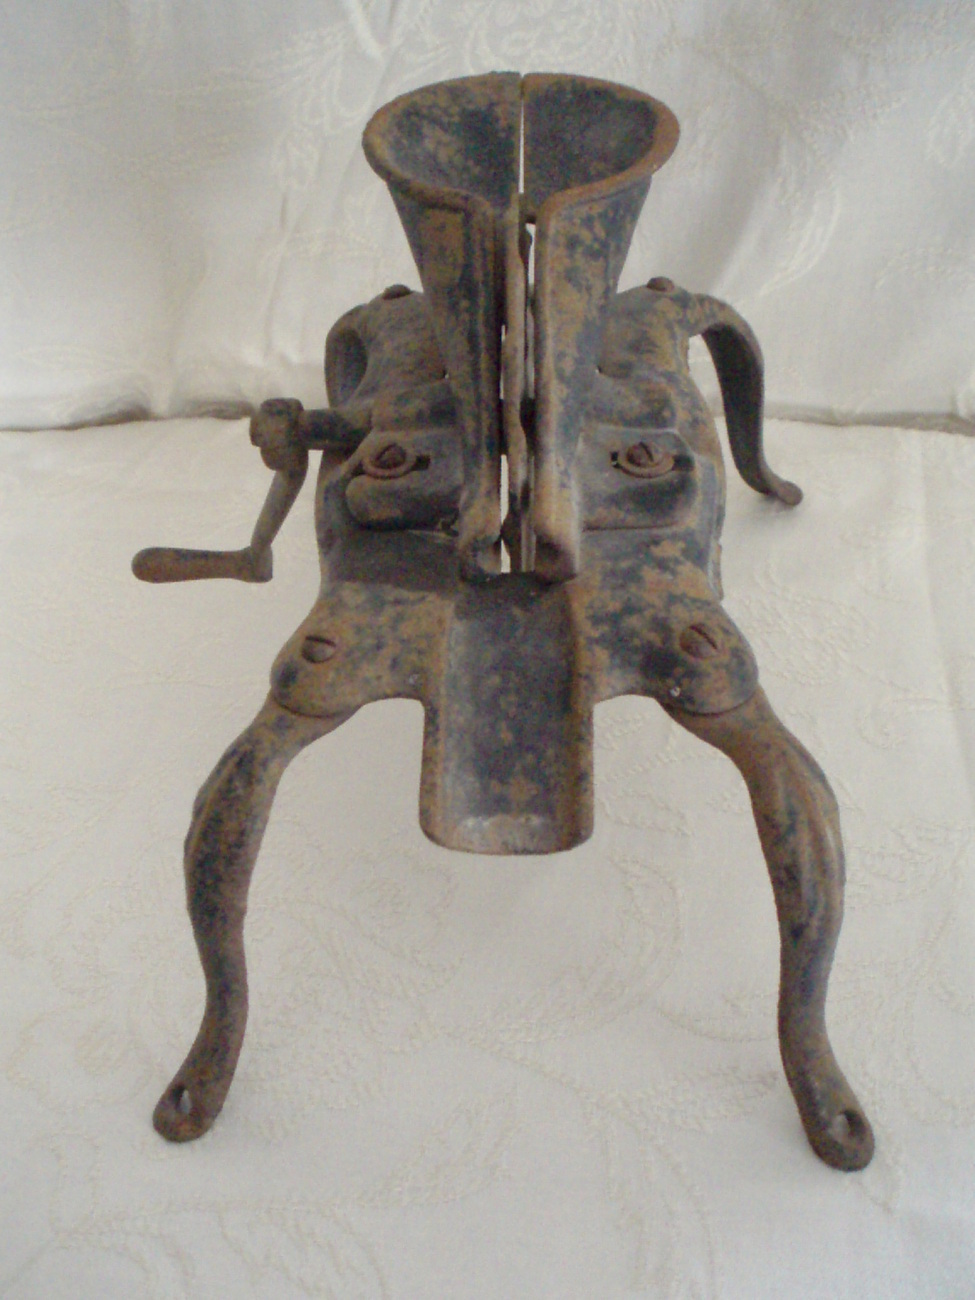 antique cherry pitter stoner manual cast iron circa 1870